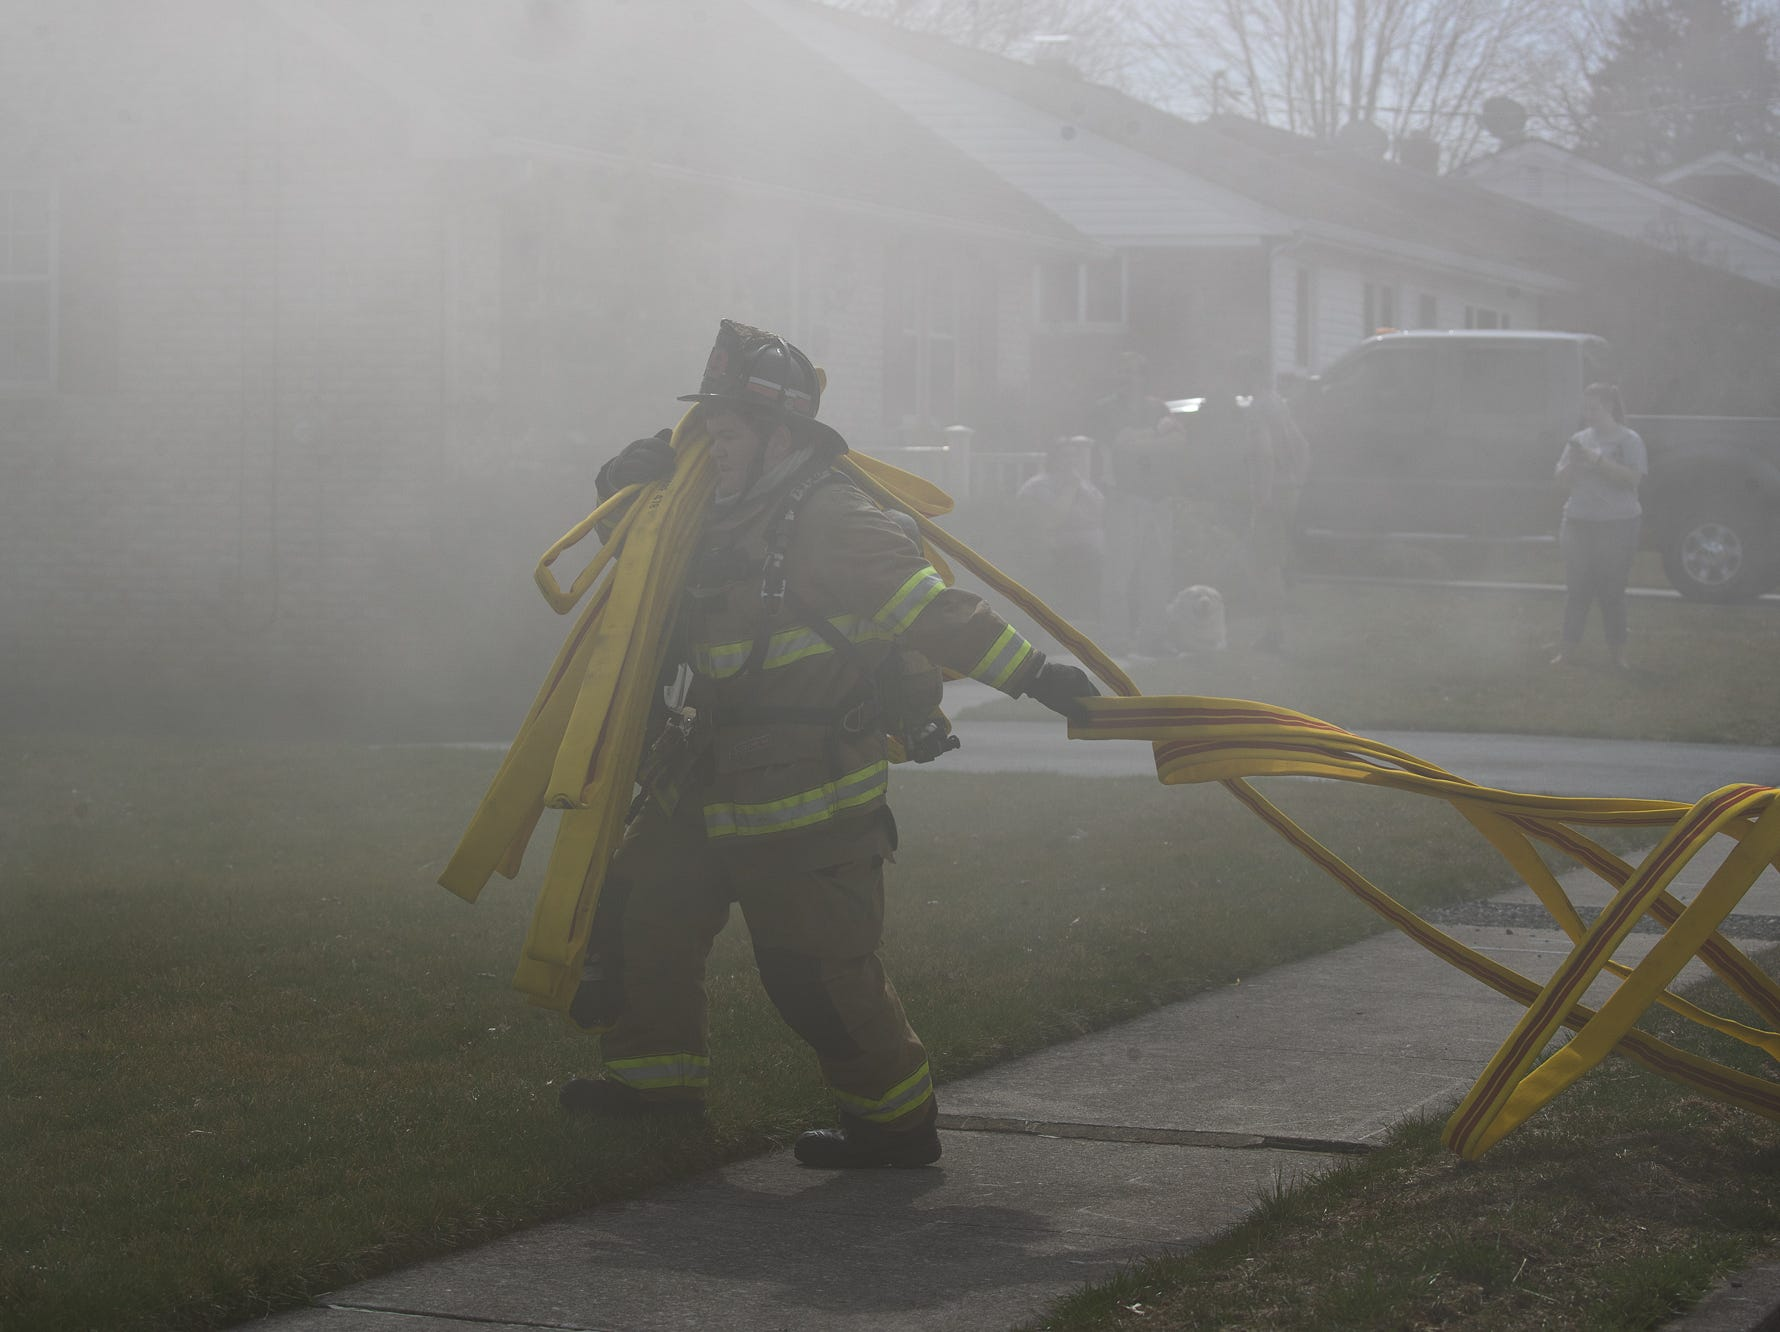 Volunteer firefighter Brady Cromer pulls a two-inch hoseline to begin the initial interior attack at the scene of a house fire on the 100 block of Mumma Ave., Saturday, March 30, 2019, in Penn Township. No one was injured in the fire, which appears to have been an accidental fire in the kitchen, said Hanover Area Fire & Rescue Chief Tony Clousher.